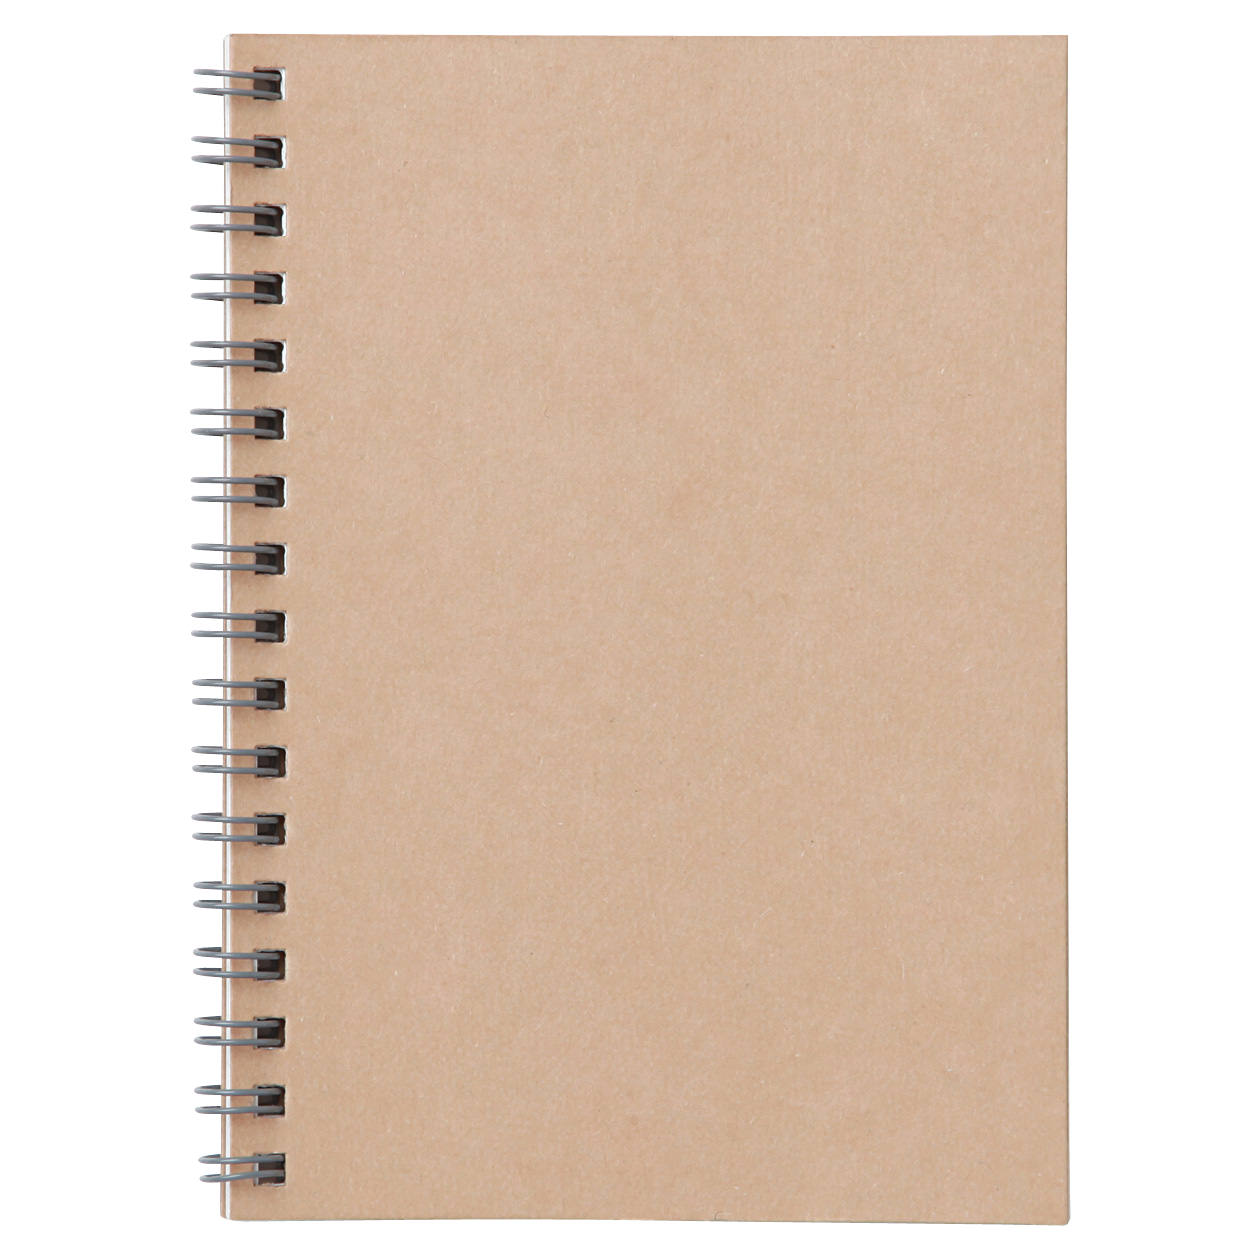 Planting Tree Paper Double Ring Notebook A6